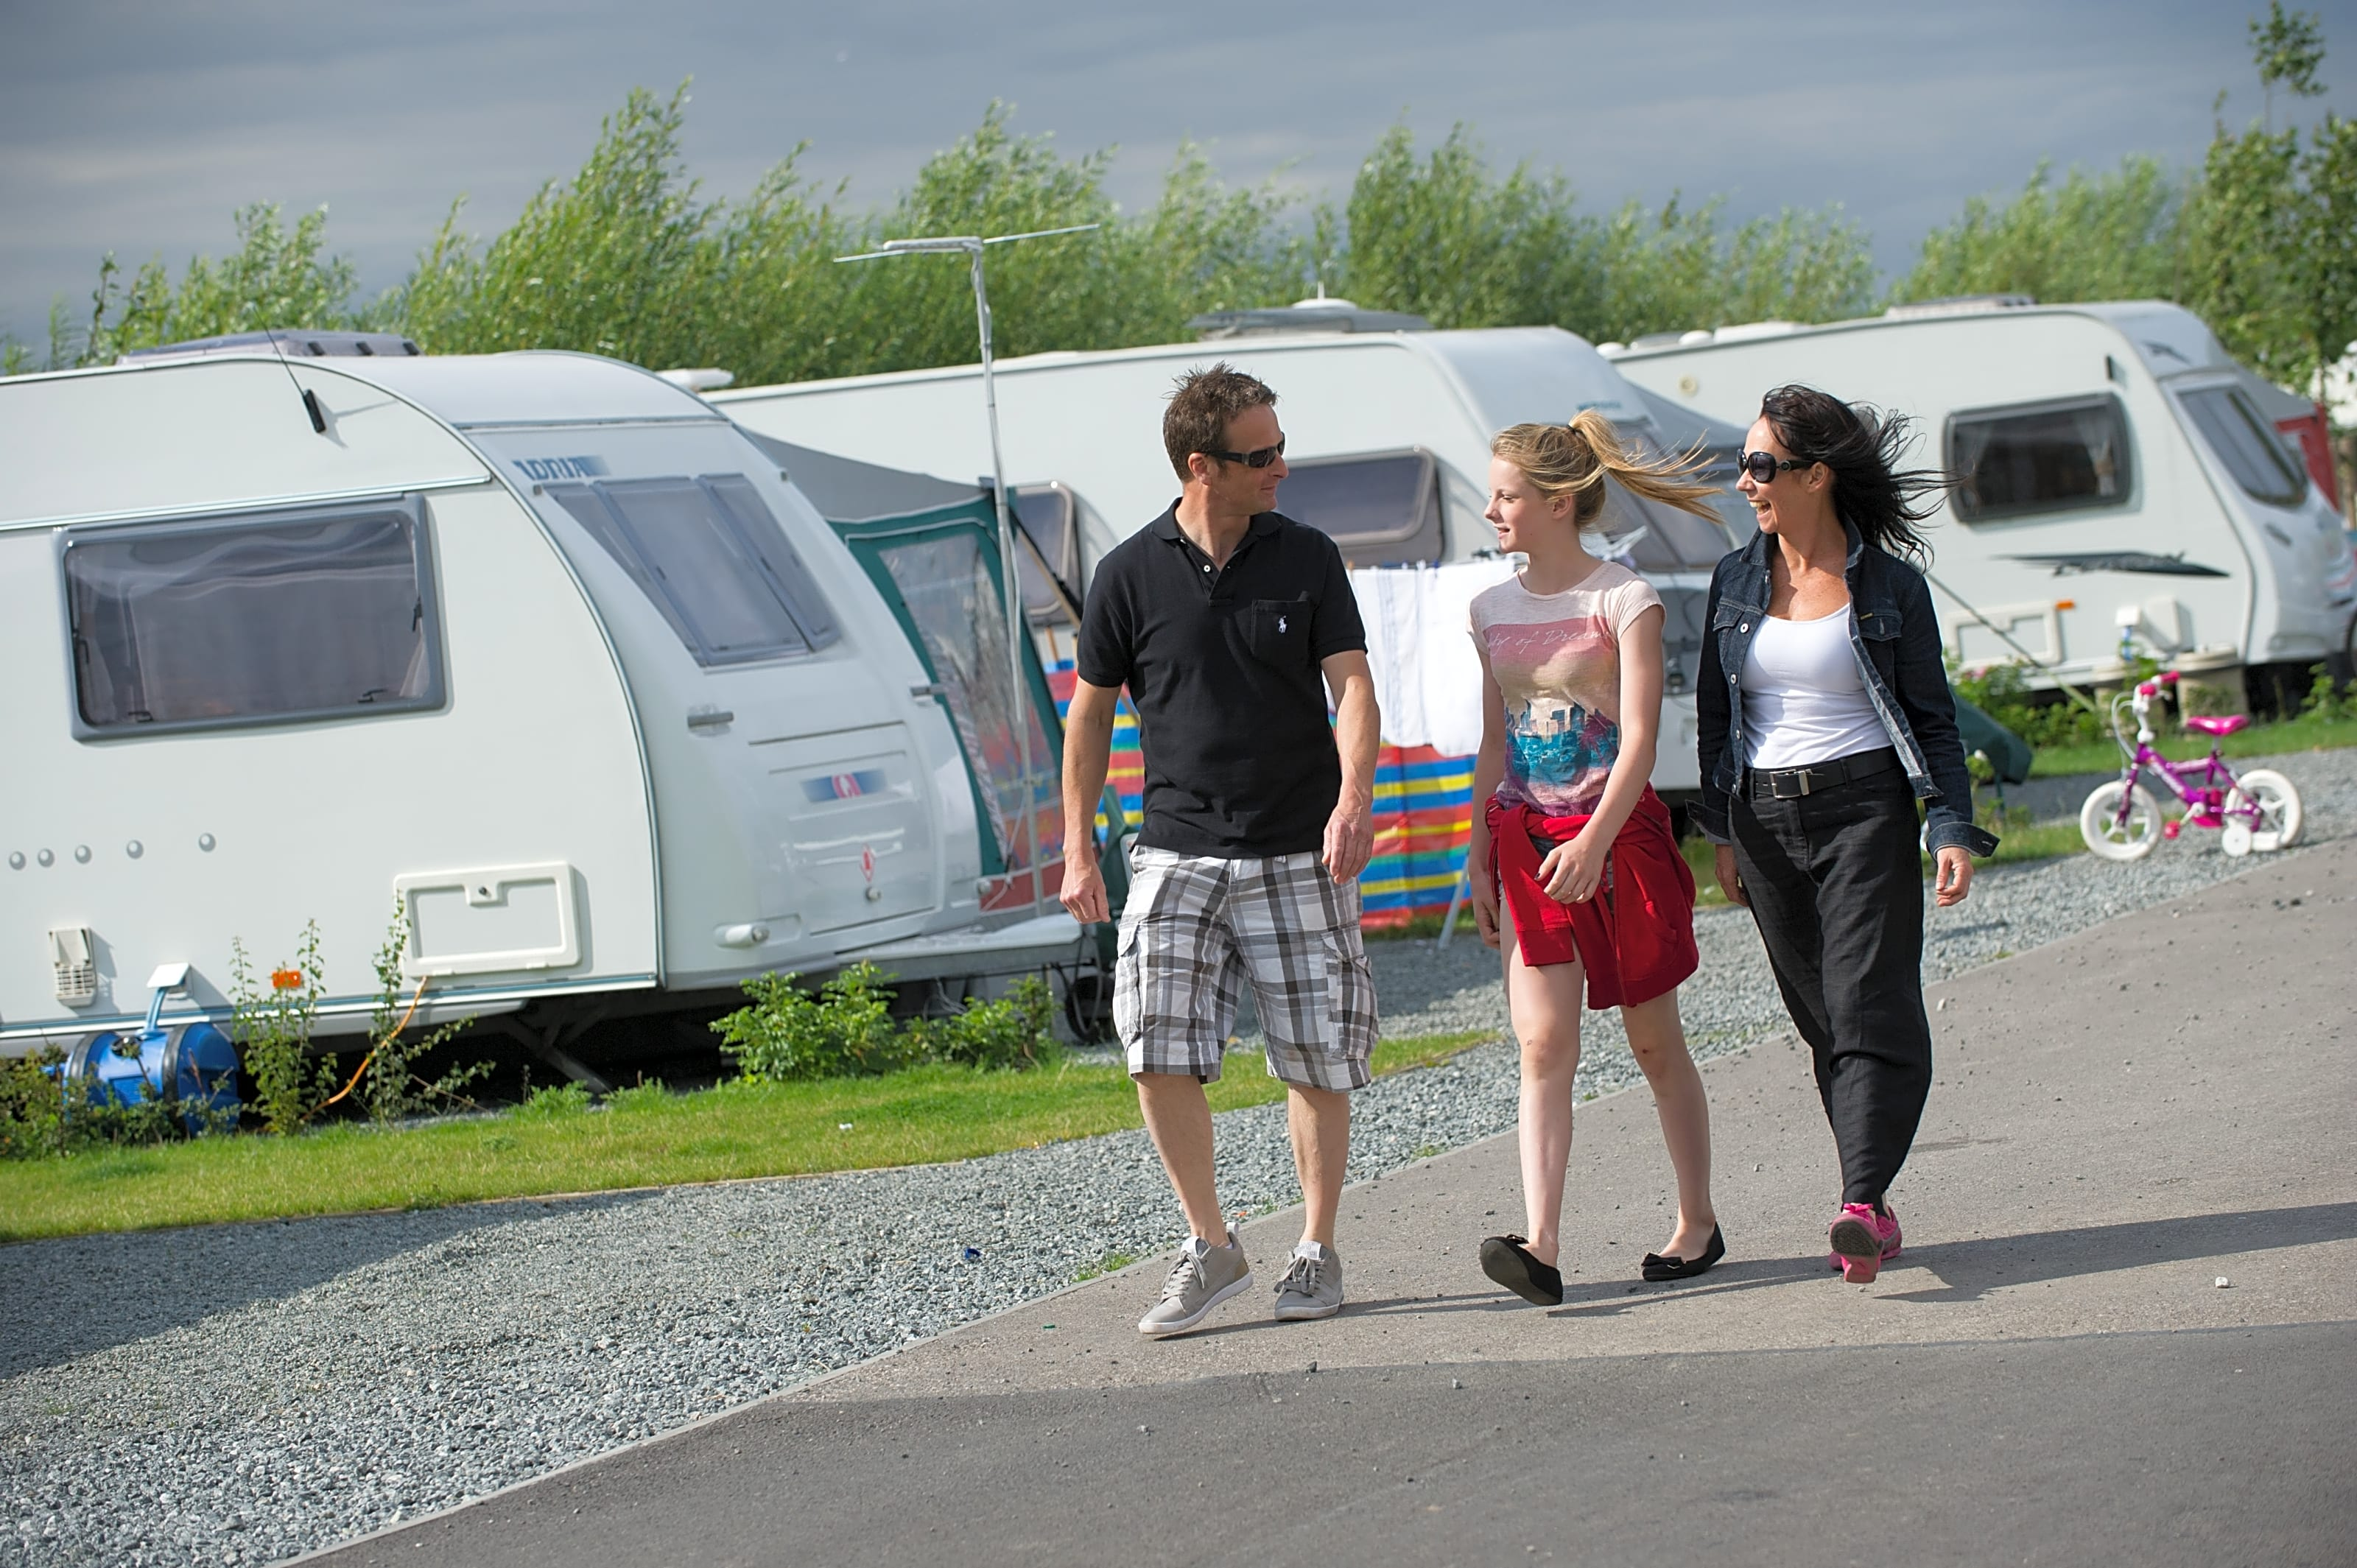 Touring pitches on site